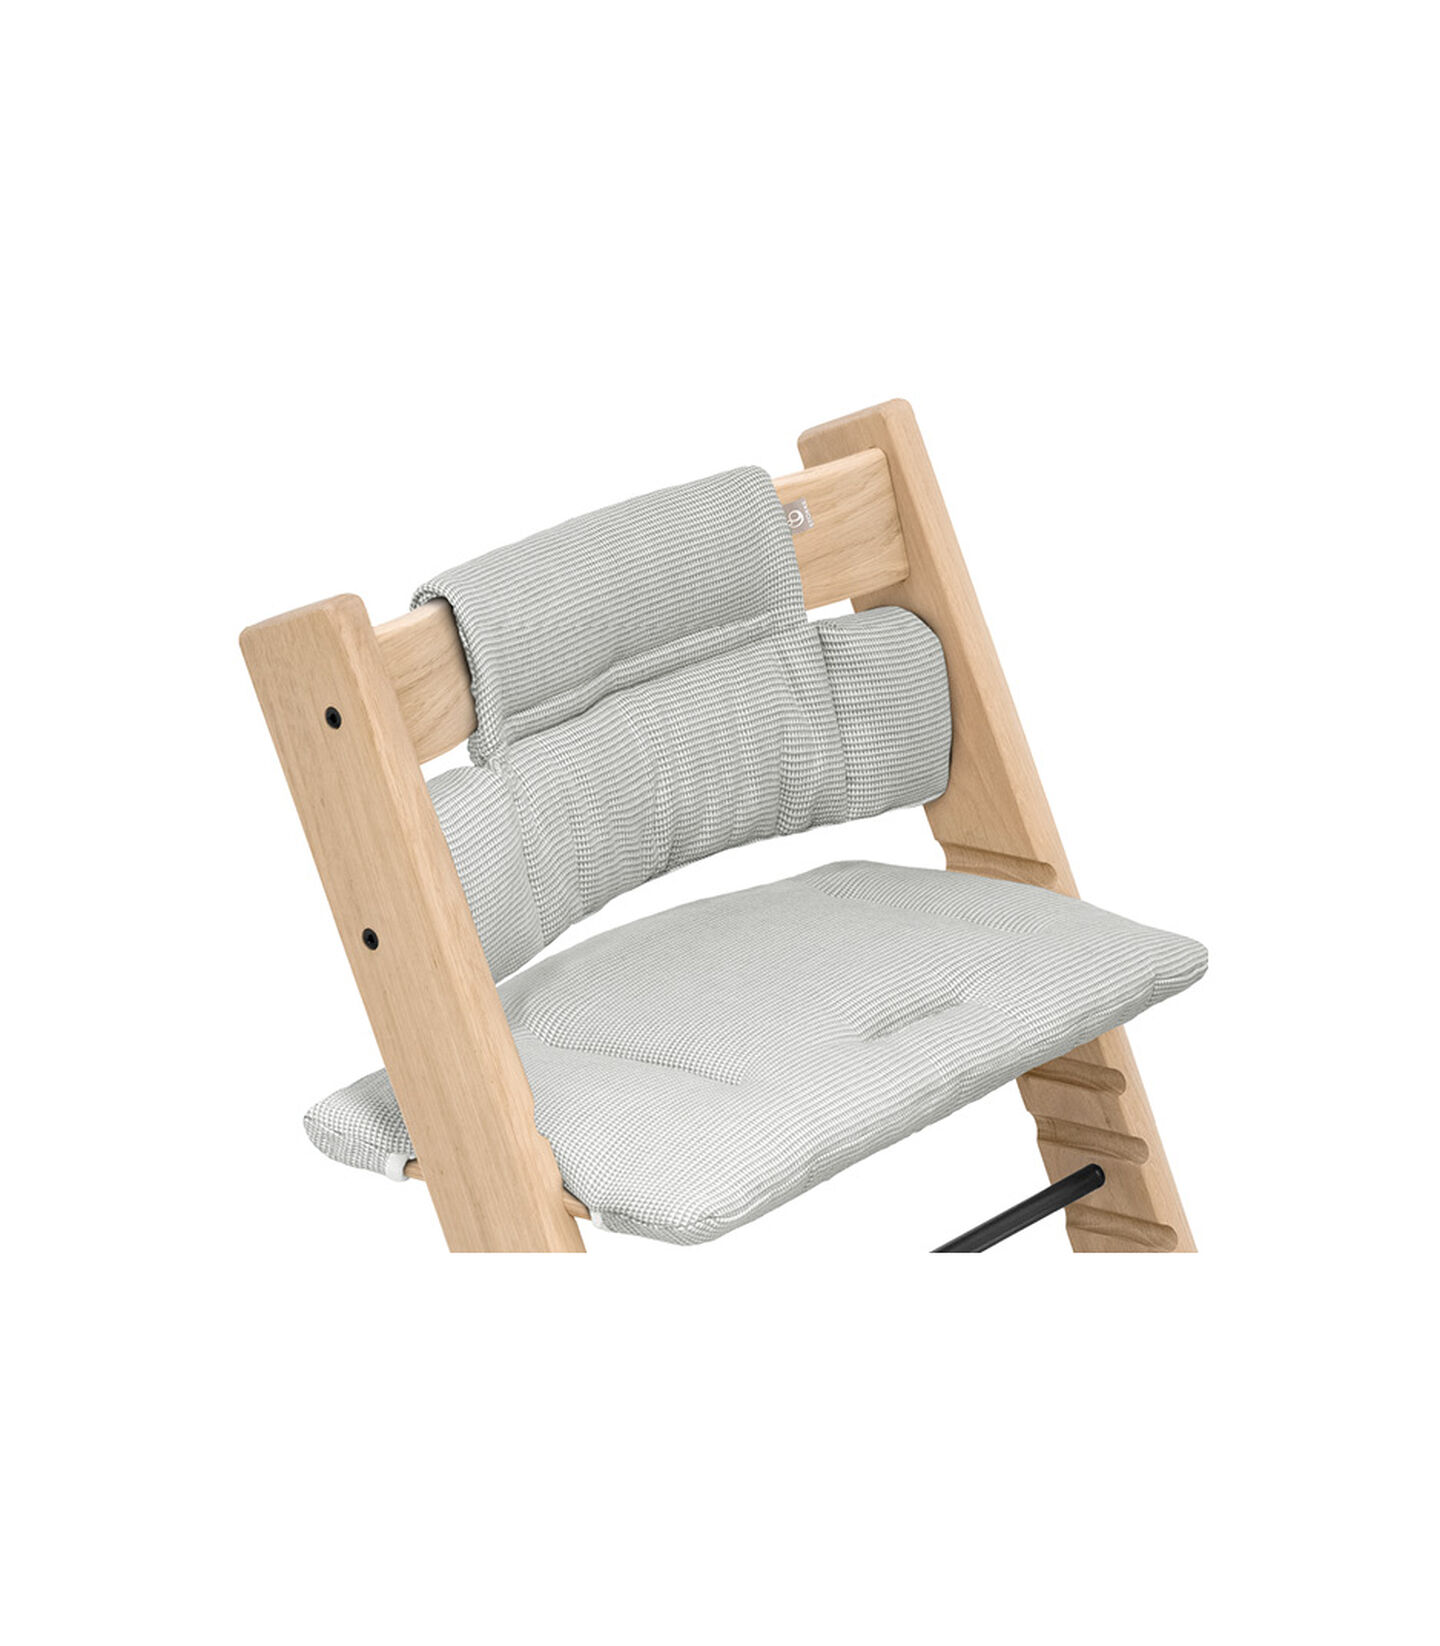 Tripp Trapp® Classic Kussenset Nordic Grey, Nordic Grey, mainview view 2